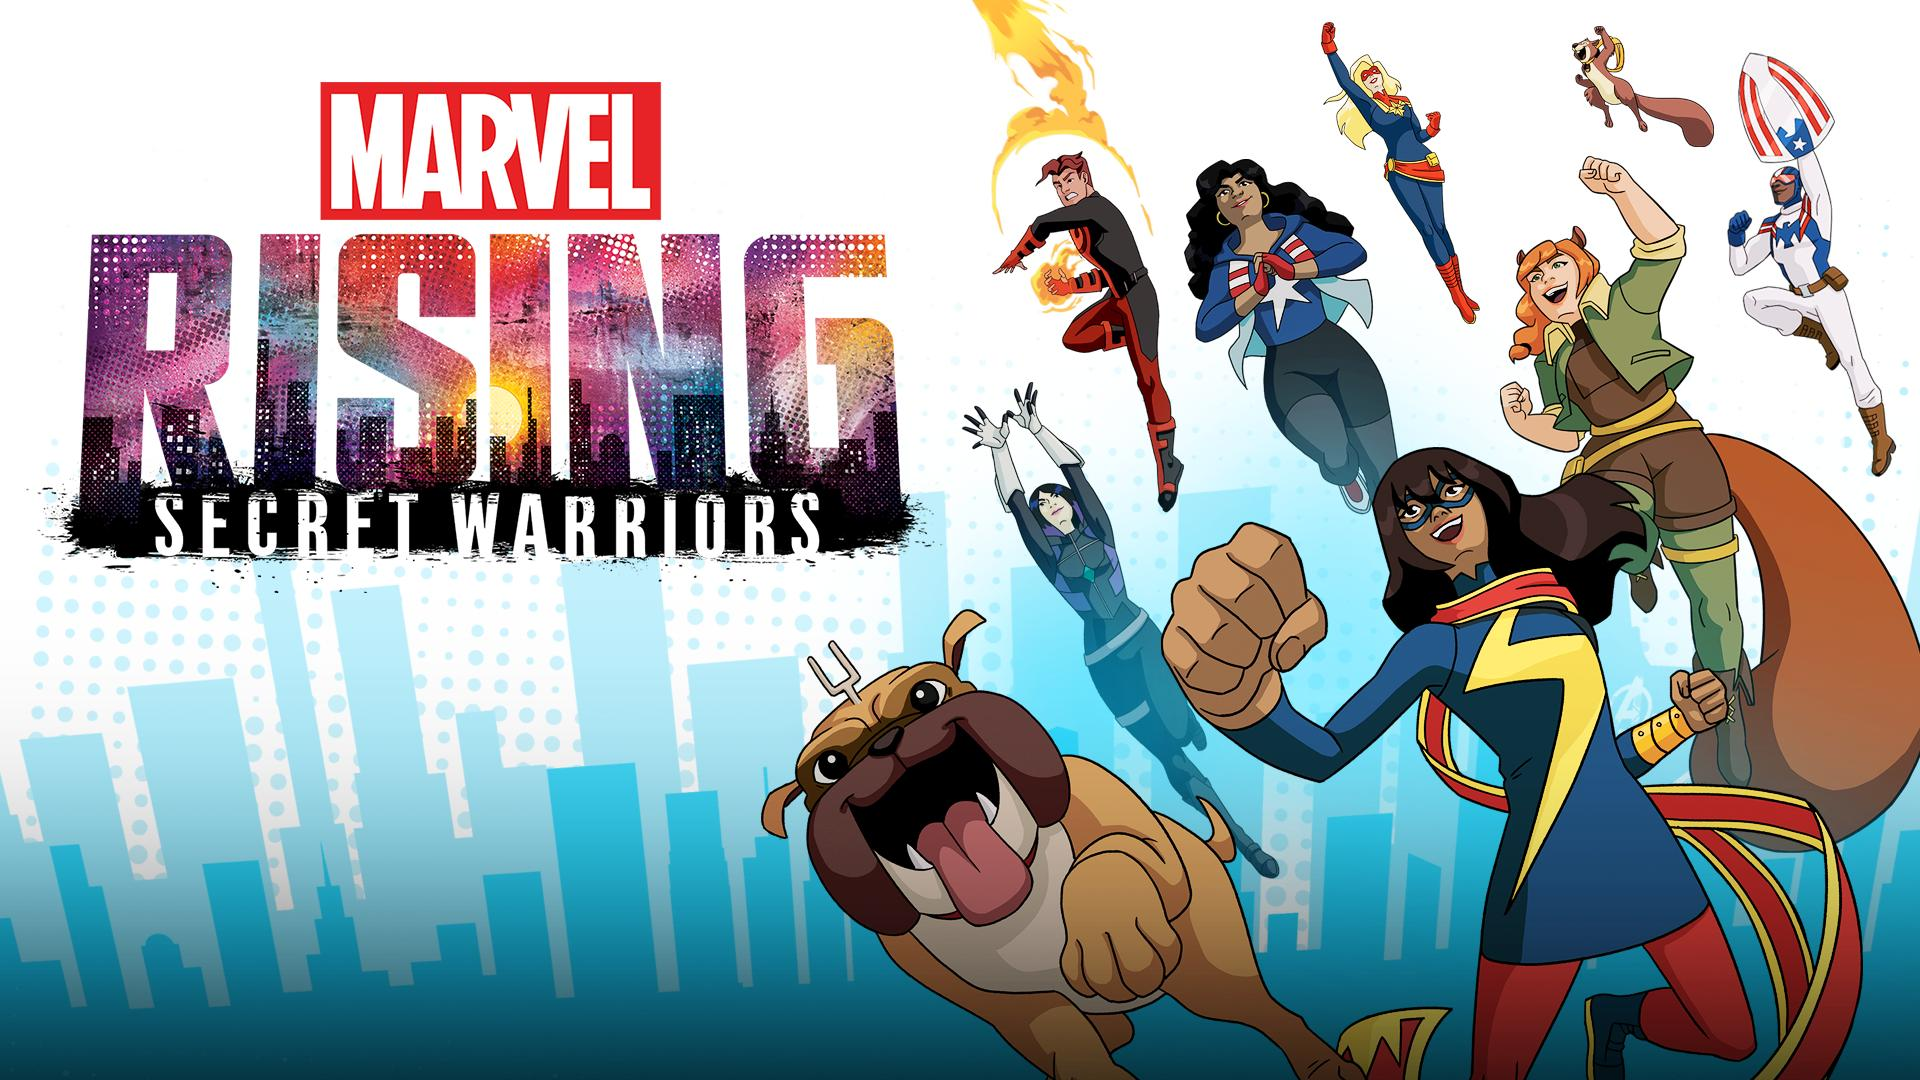 Marvel Rising Secret Warriors (2018).jpg